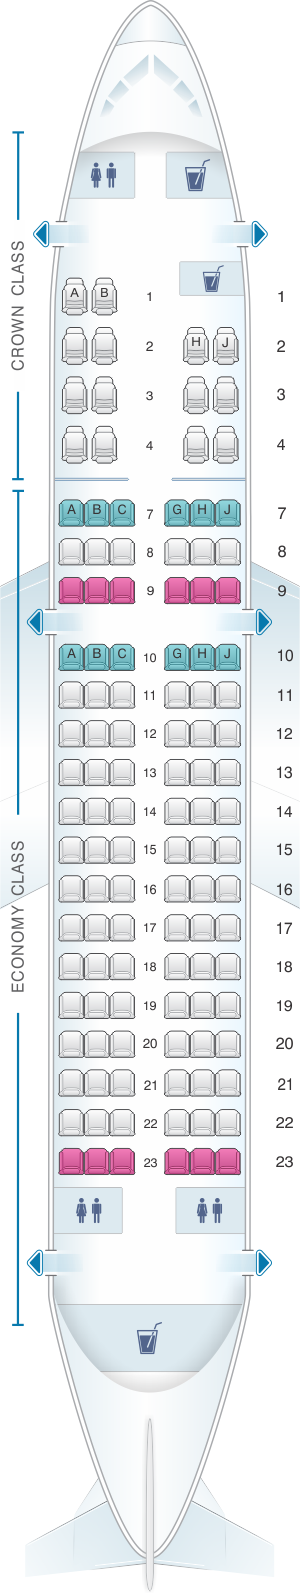 Seat map for Royal Jordanian Airbus A319 132